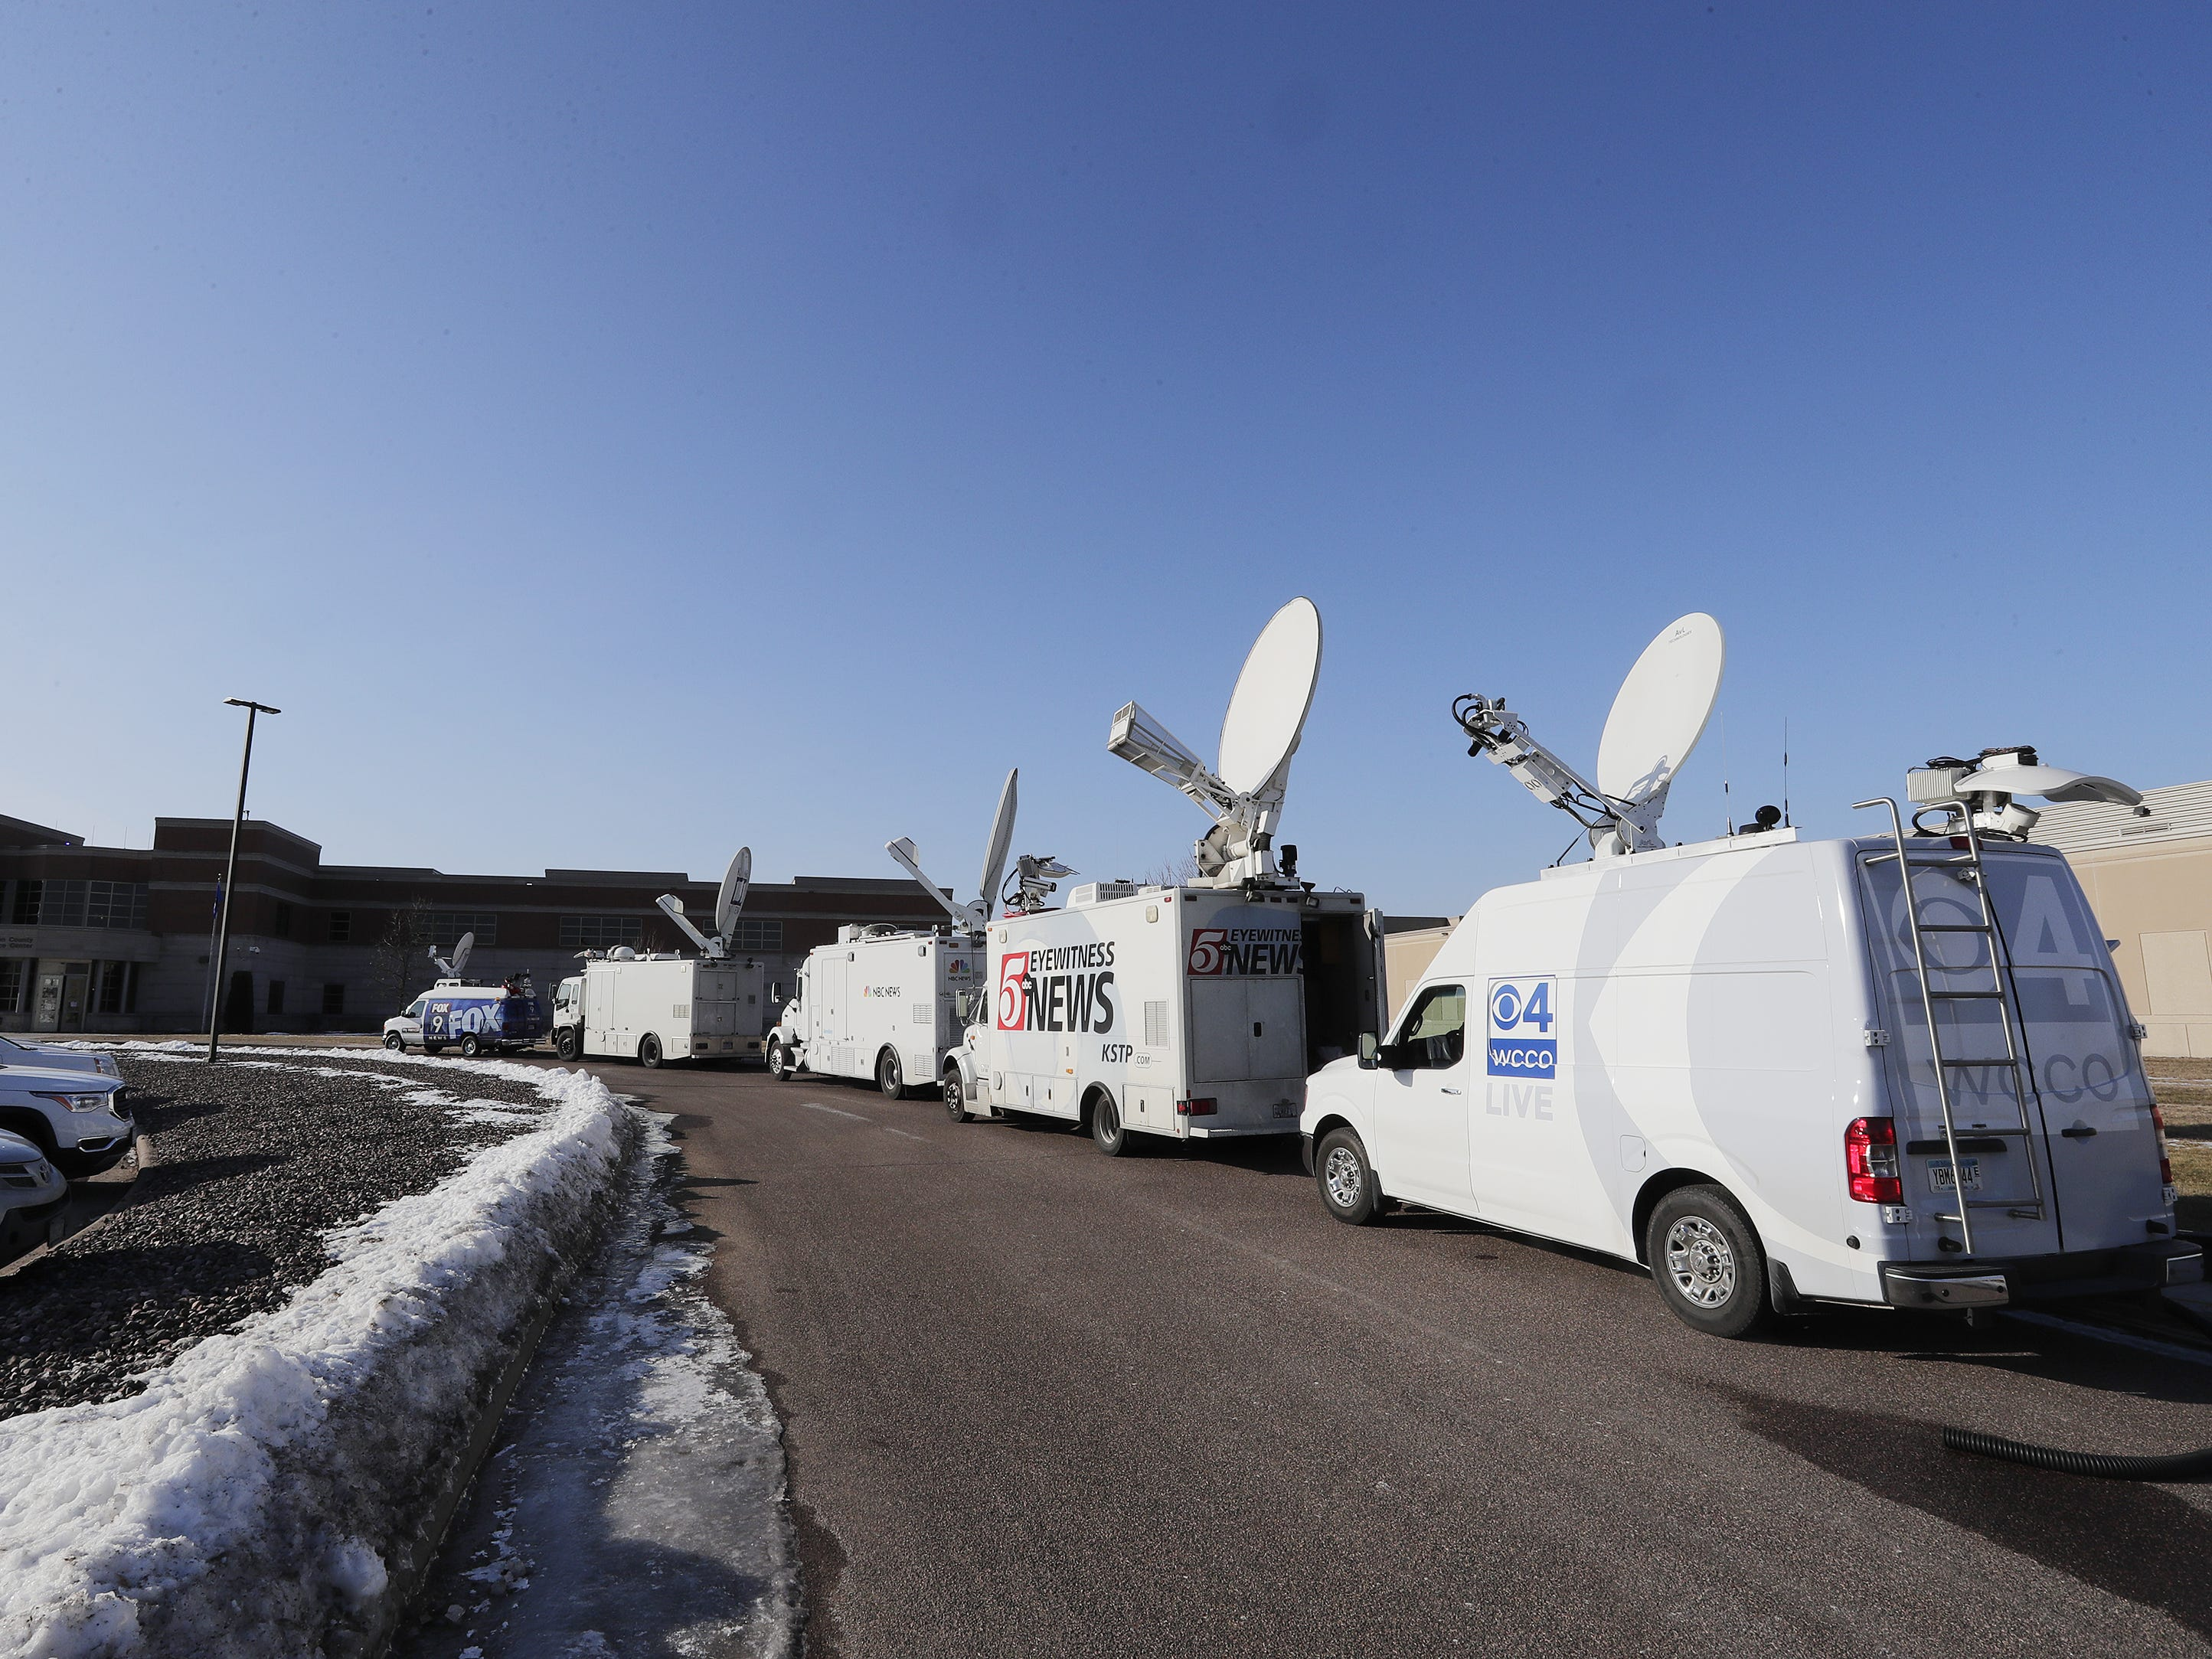 News television trucks are parked outside the Barron County Sheriff's Department on Friday, January 11, 2019 in Barron, Wis.